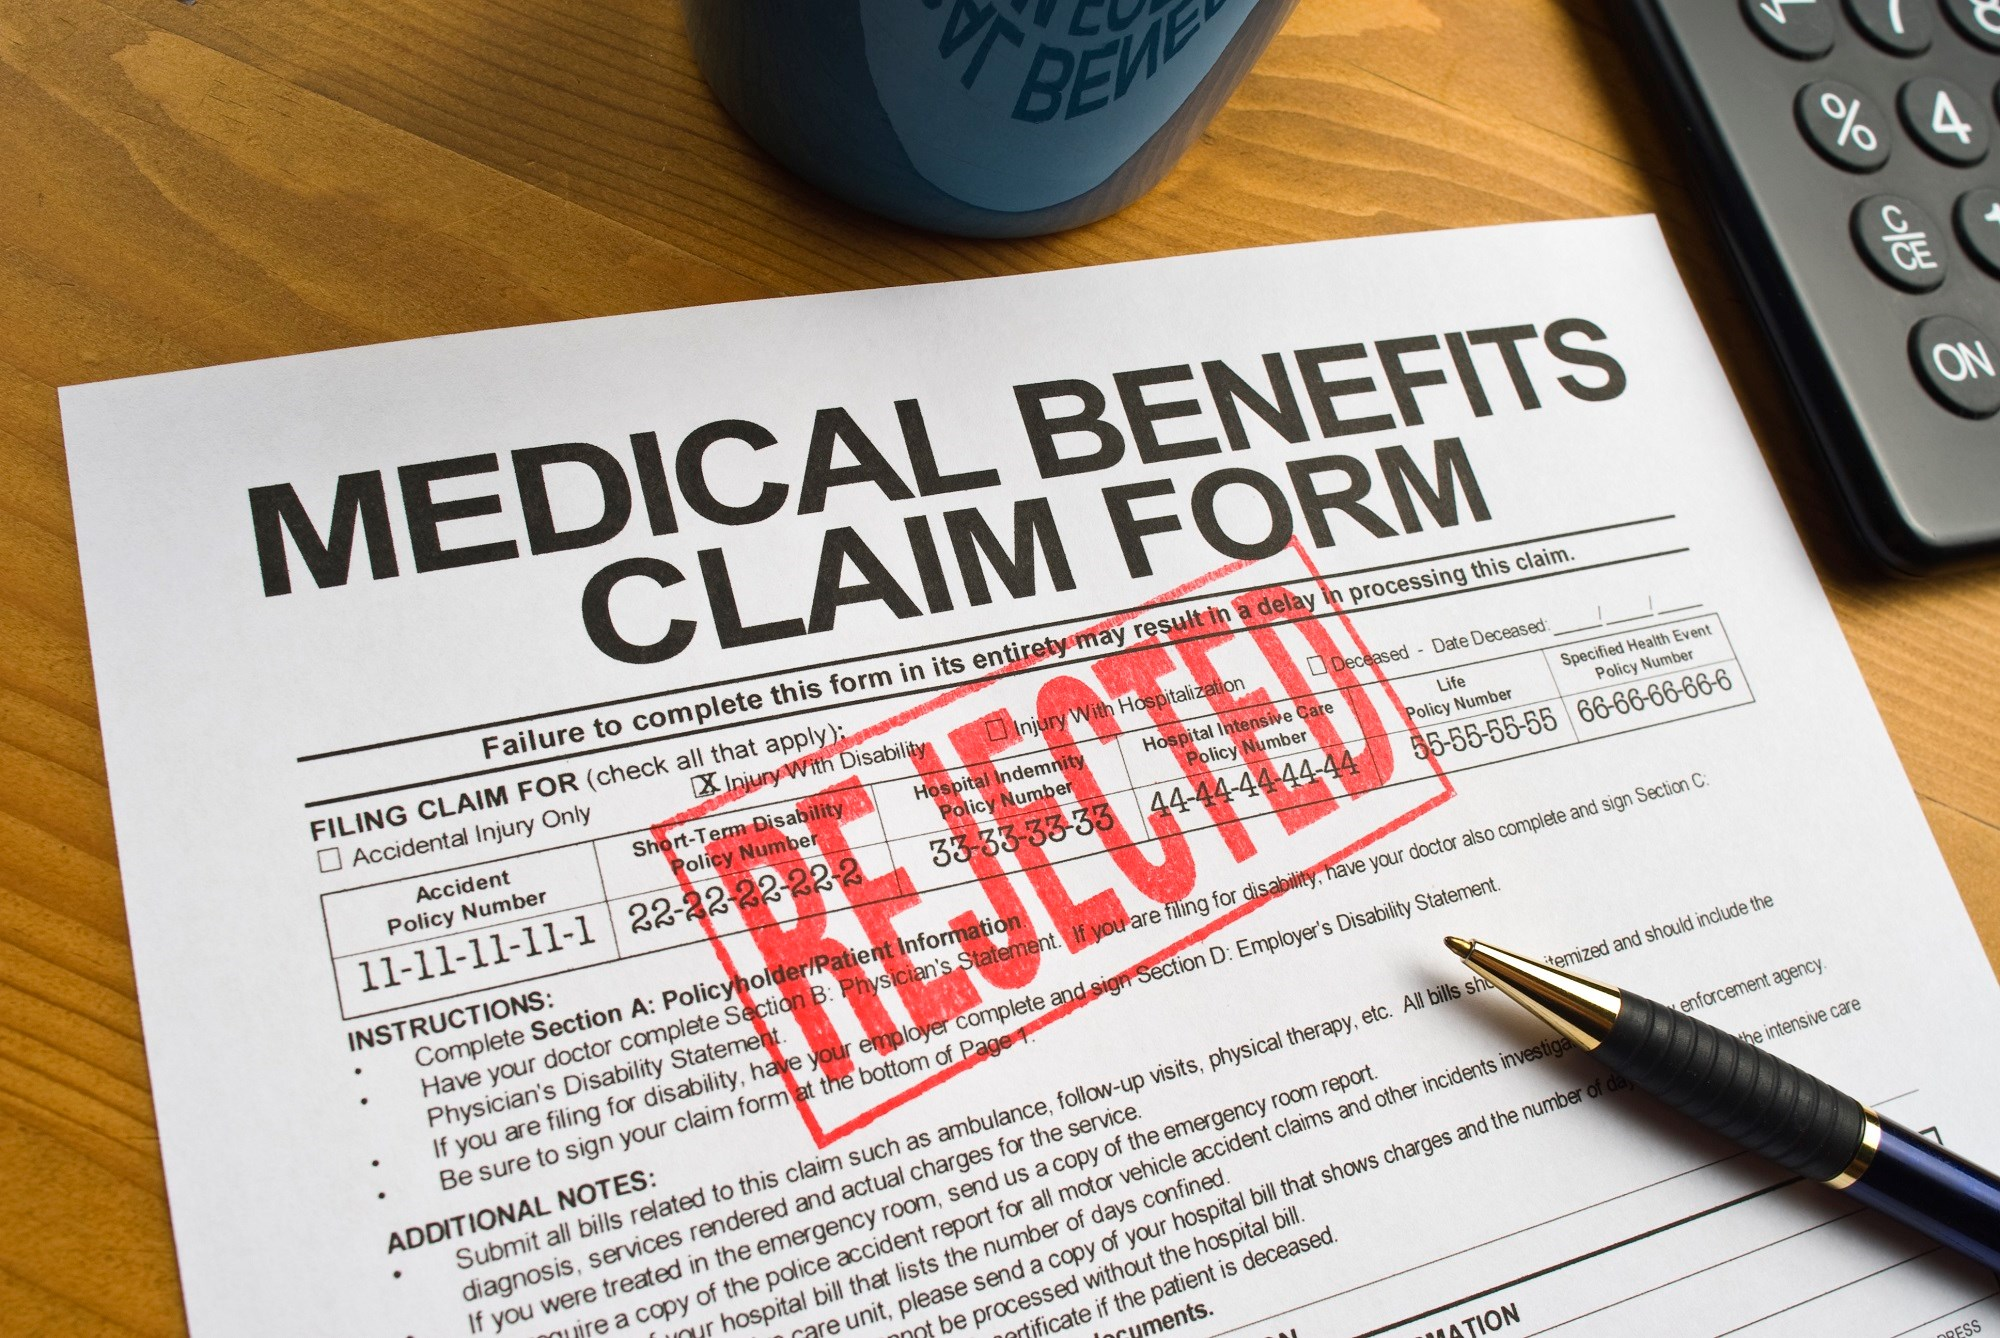 Experts Offer Tips for Provider Appeal of Denied Medical Claims